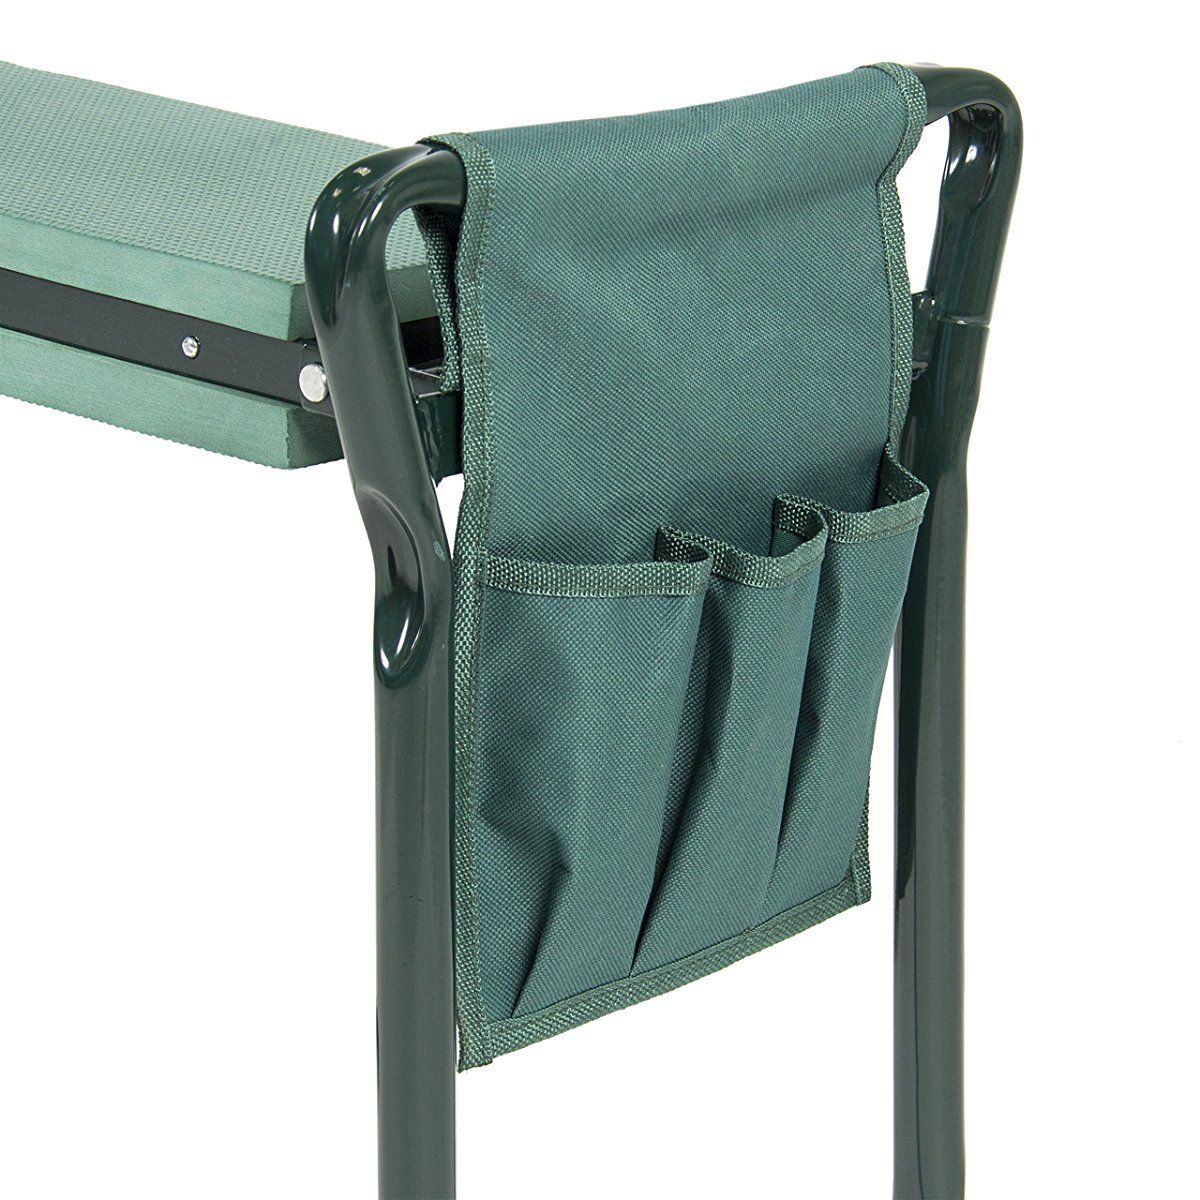 Foldable Kneeler Garden Bench Stool Cushion Seat Pad Kneeling Tool Pouch Bags